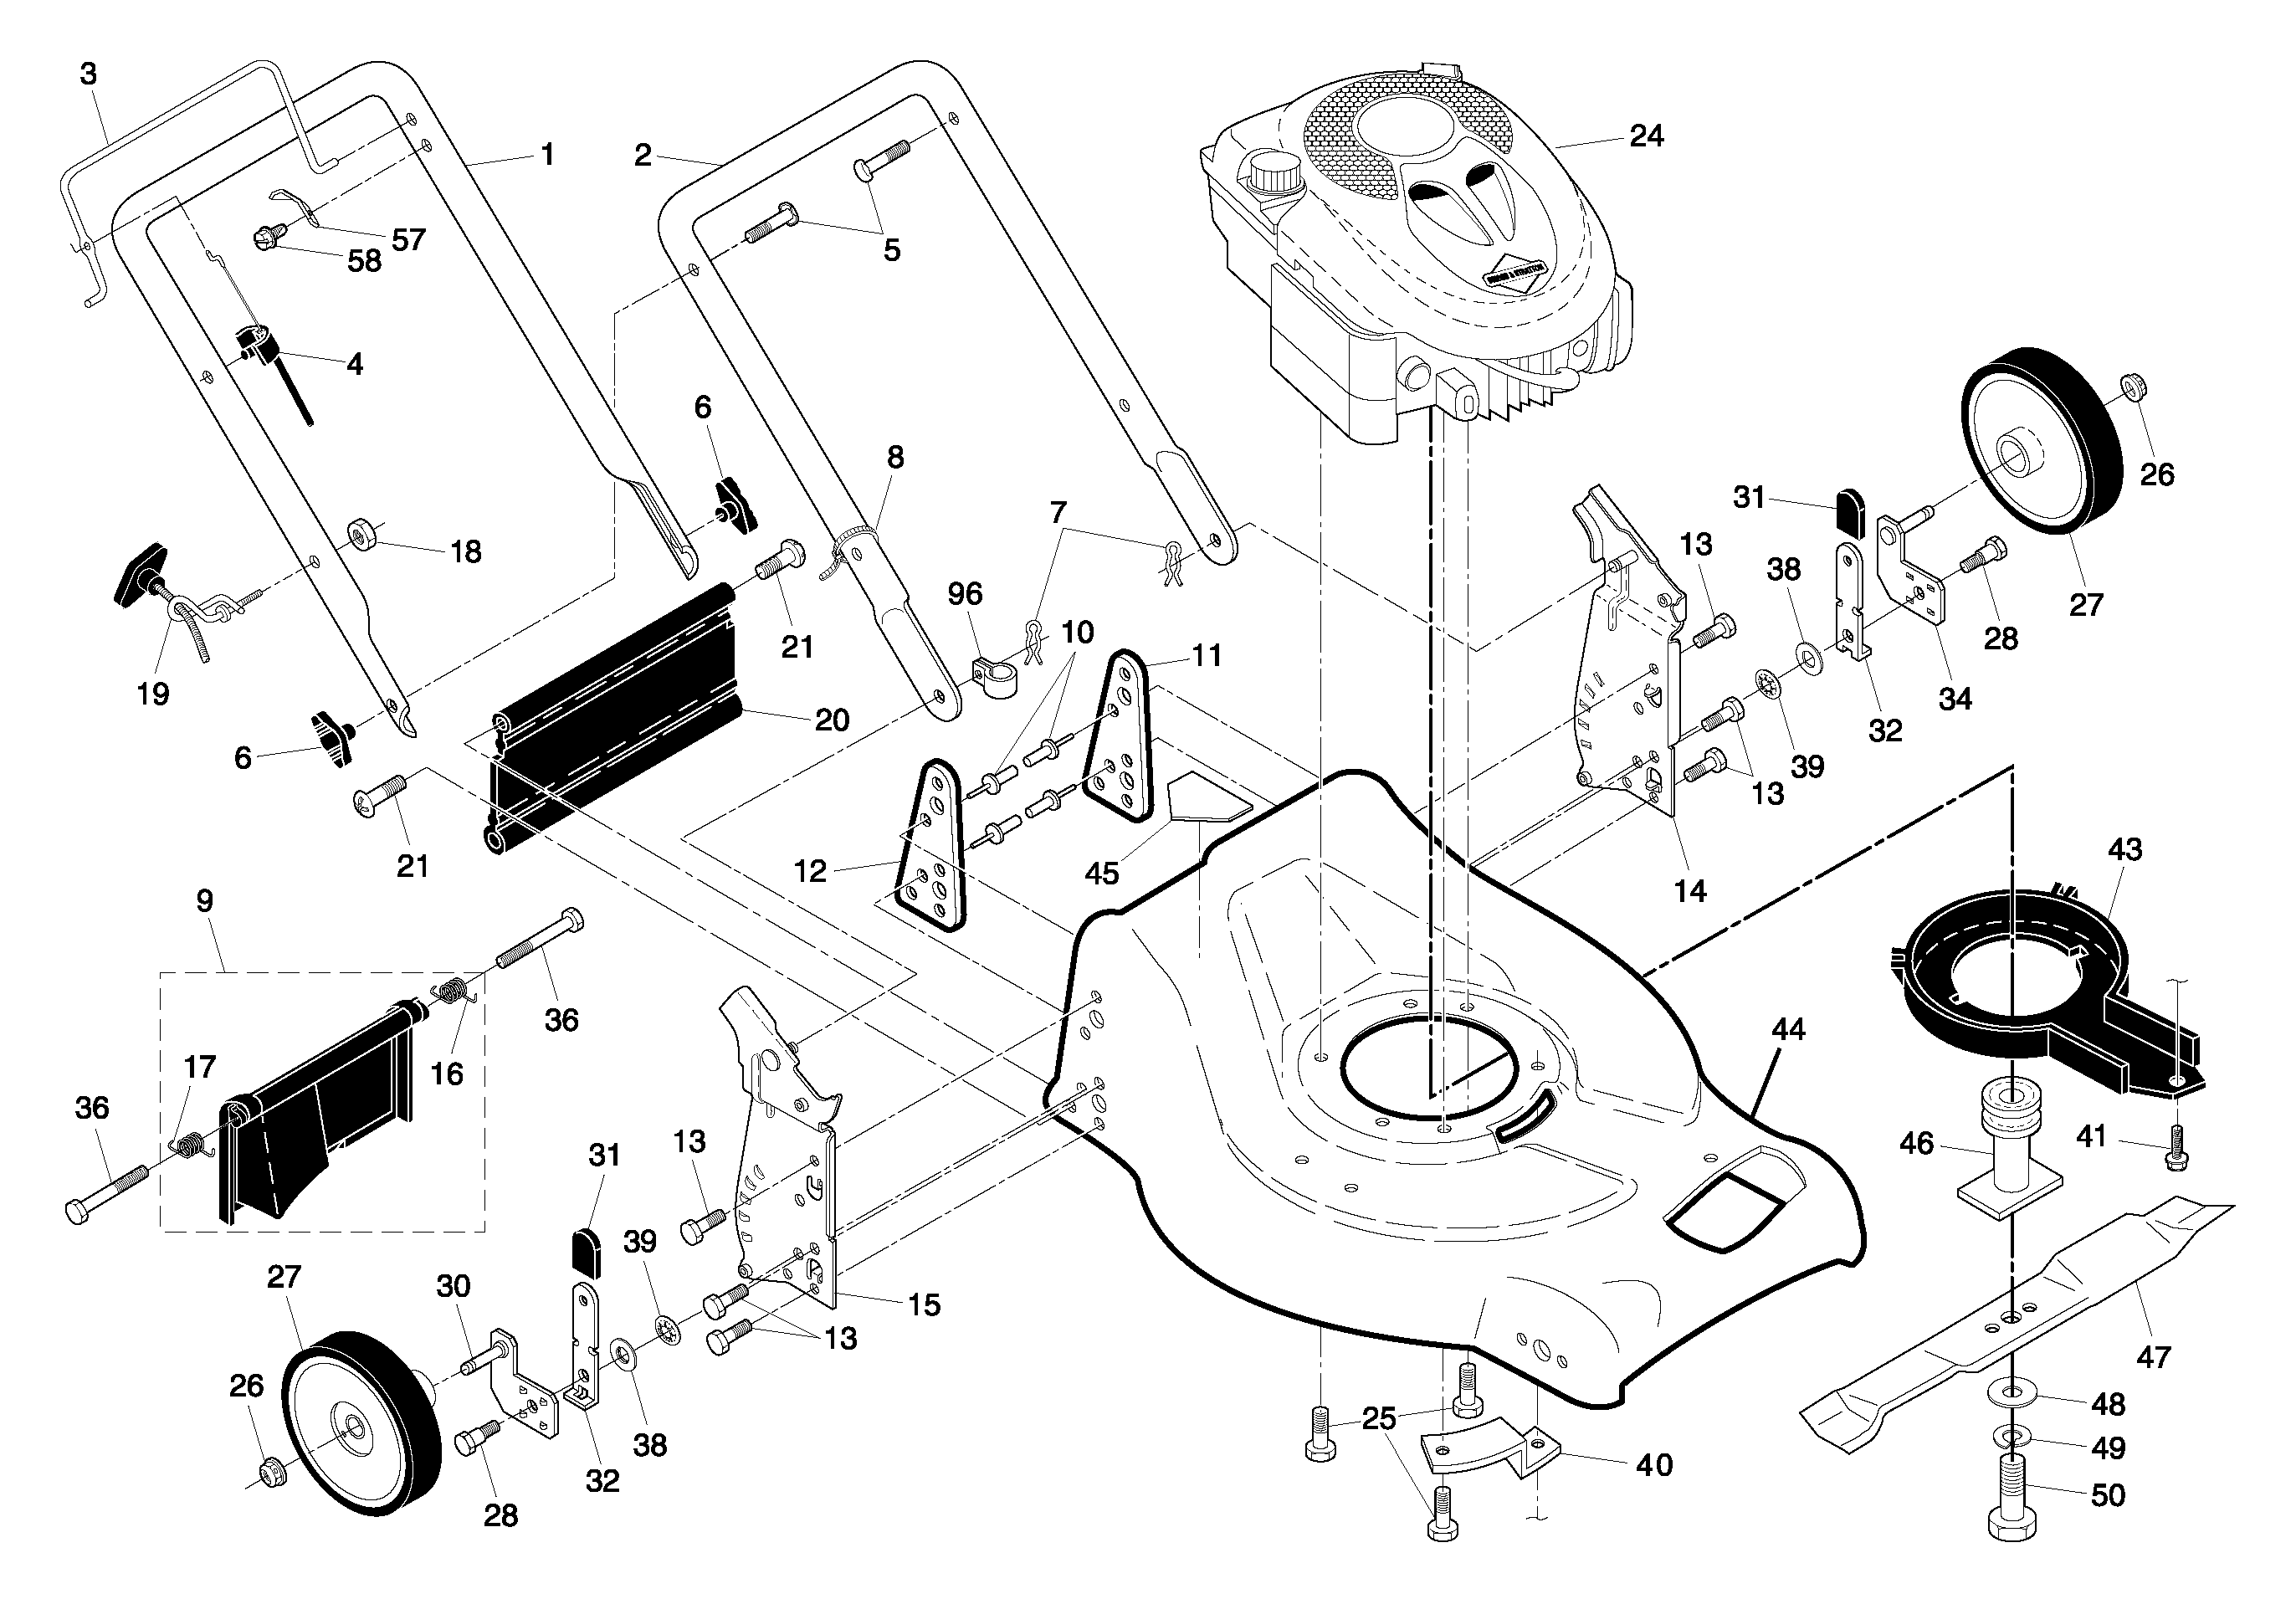 Assembly Blade Bolt Pictures 150406 Wheel Belt Diagram And Parts List For Craftsman Walkbehindlawnmower Part Diagrams Lawn Mowers Service 2744x1911